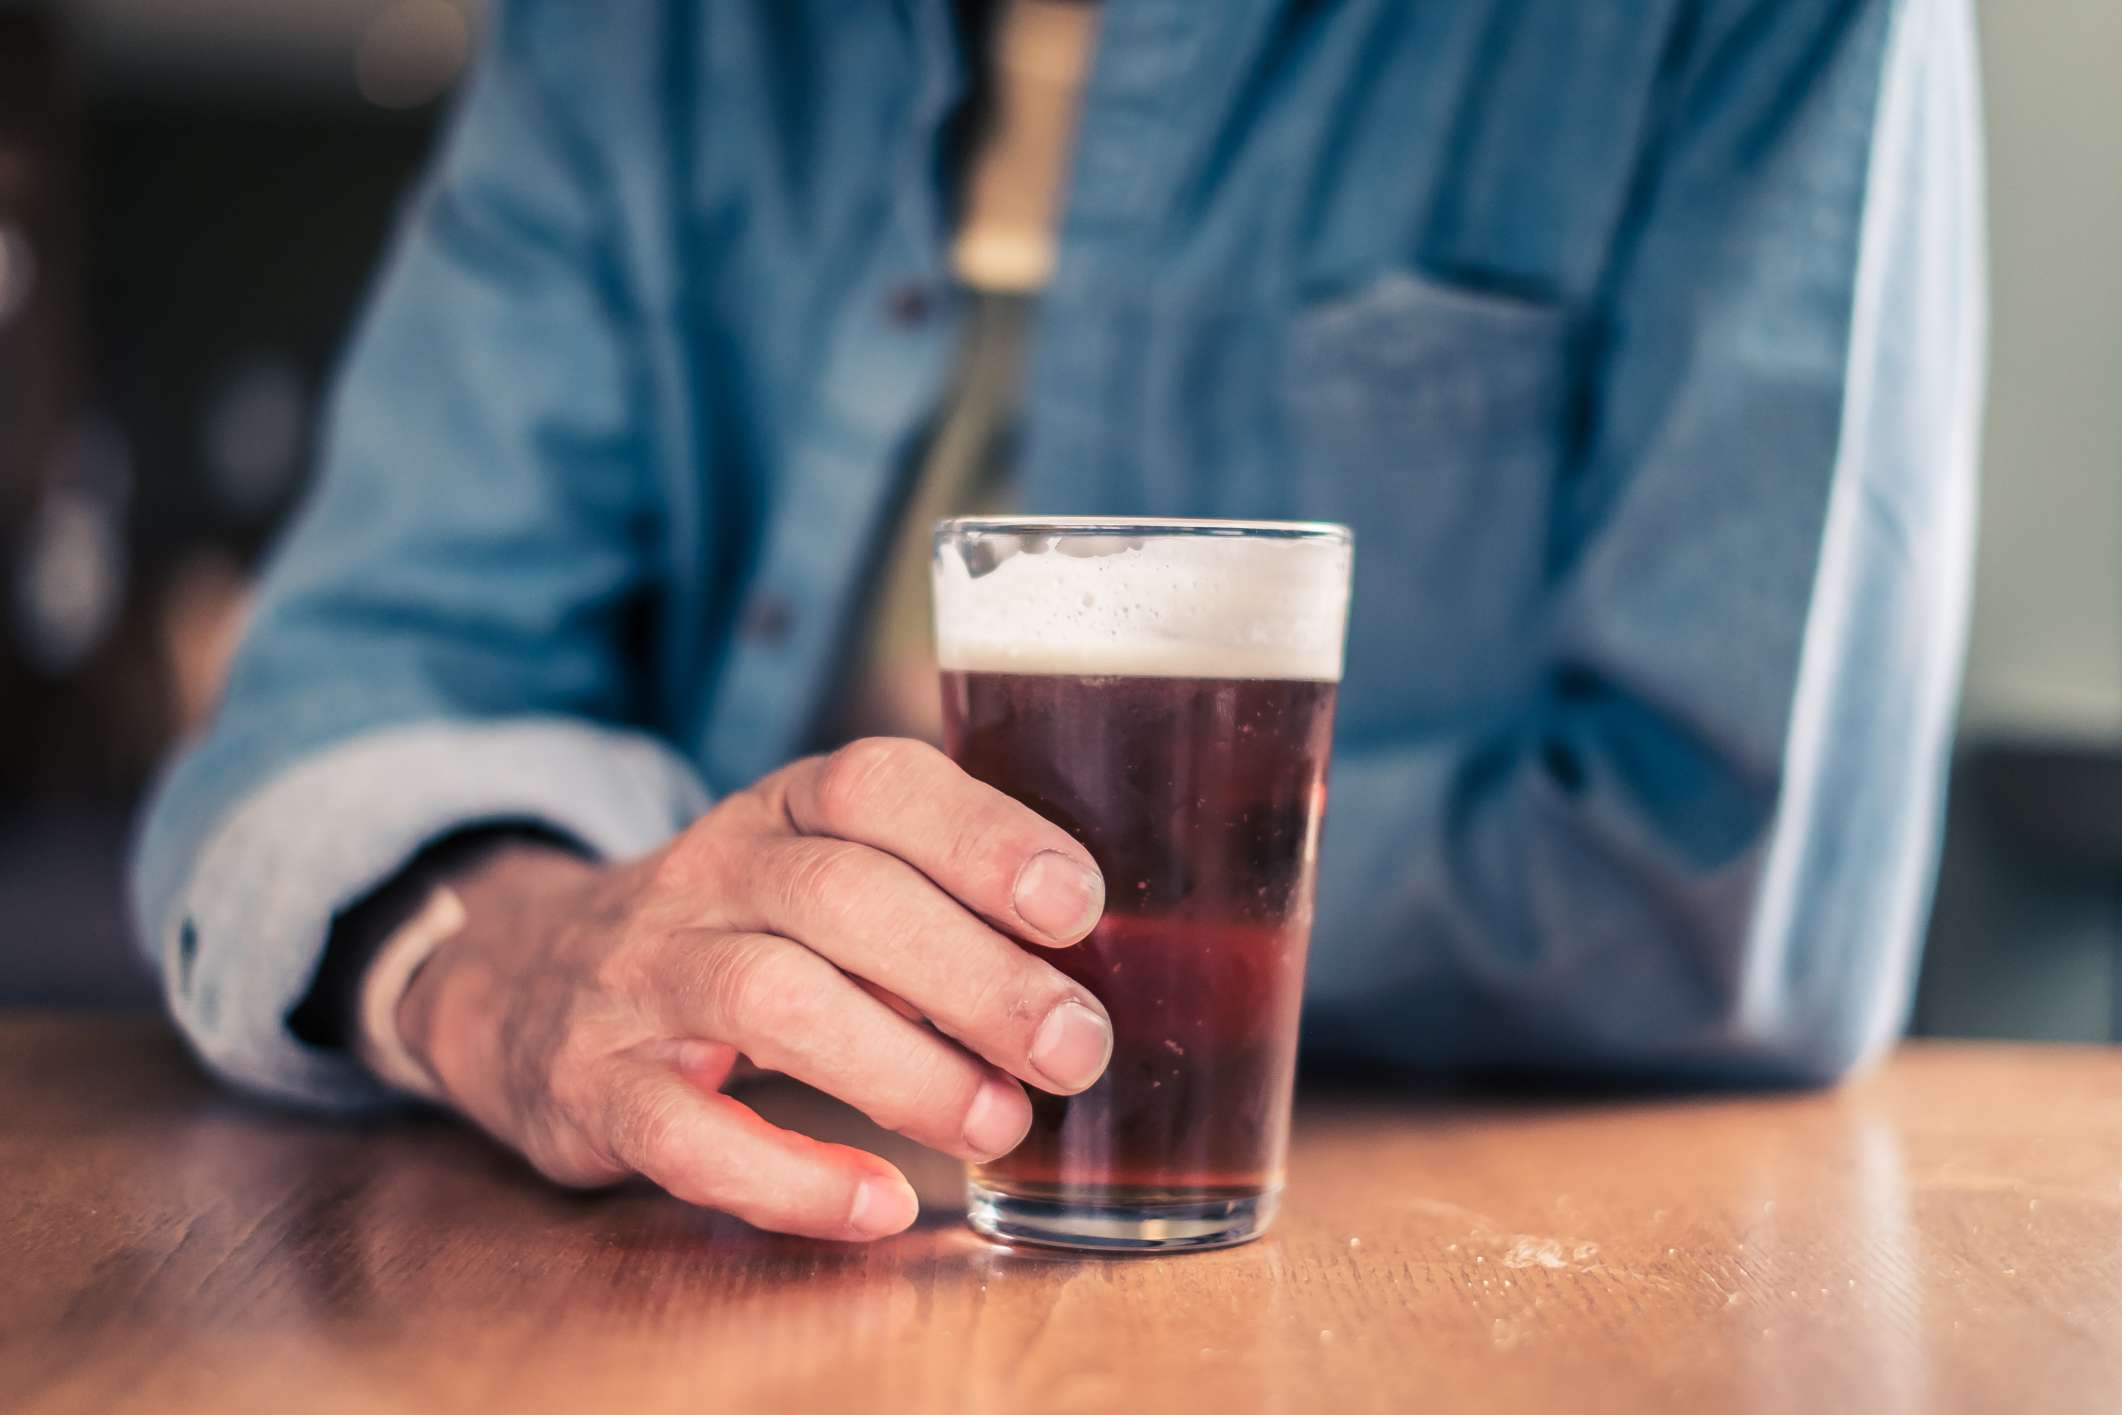 Person at a table holding a glass of beer